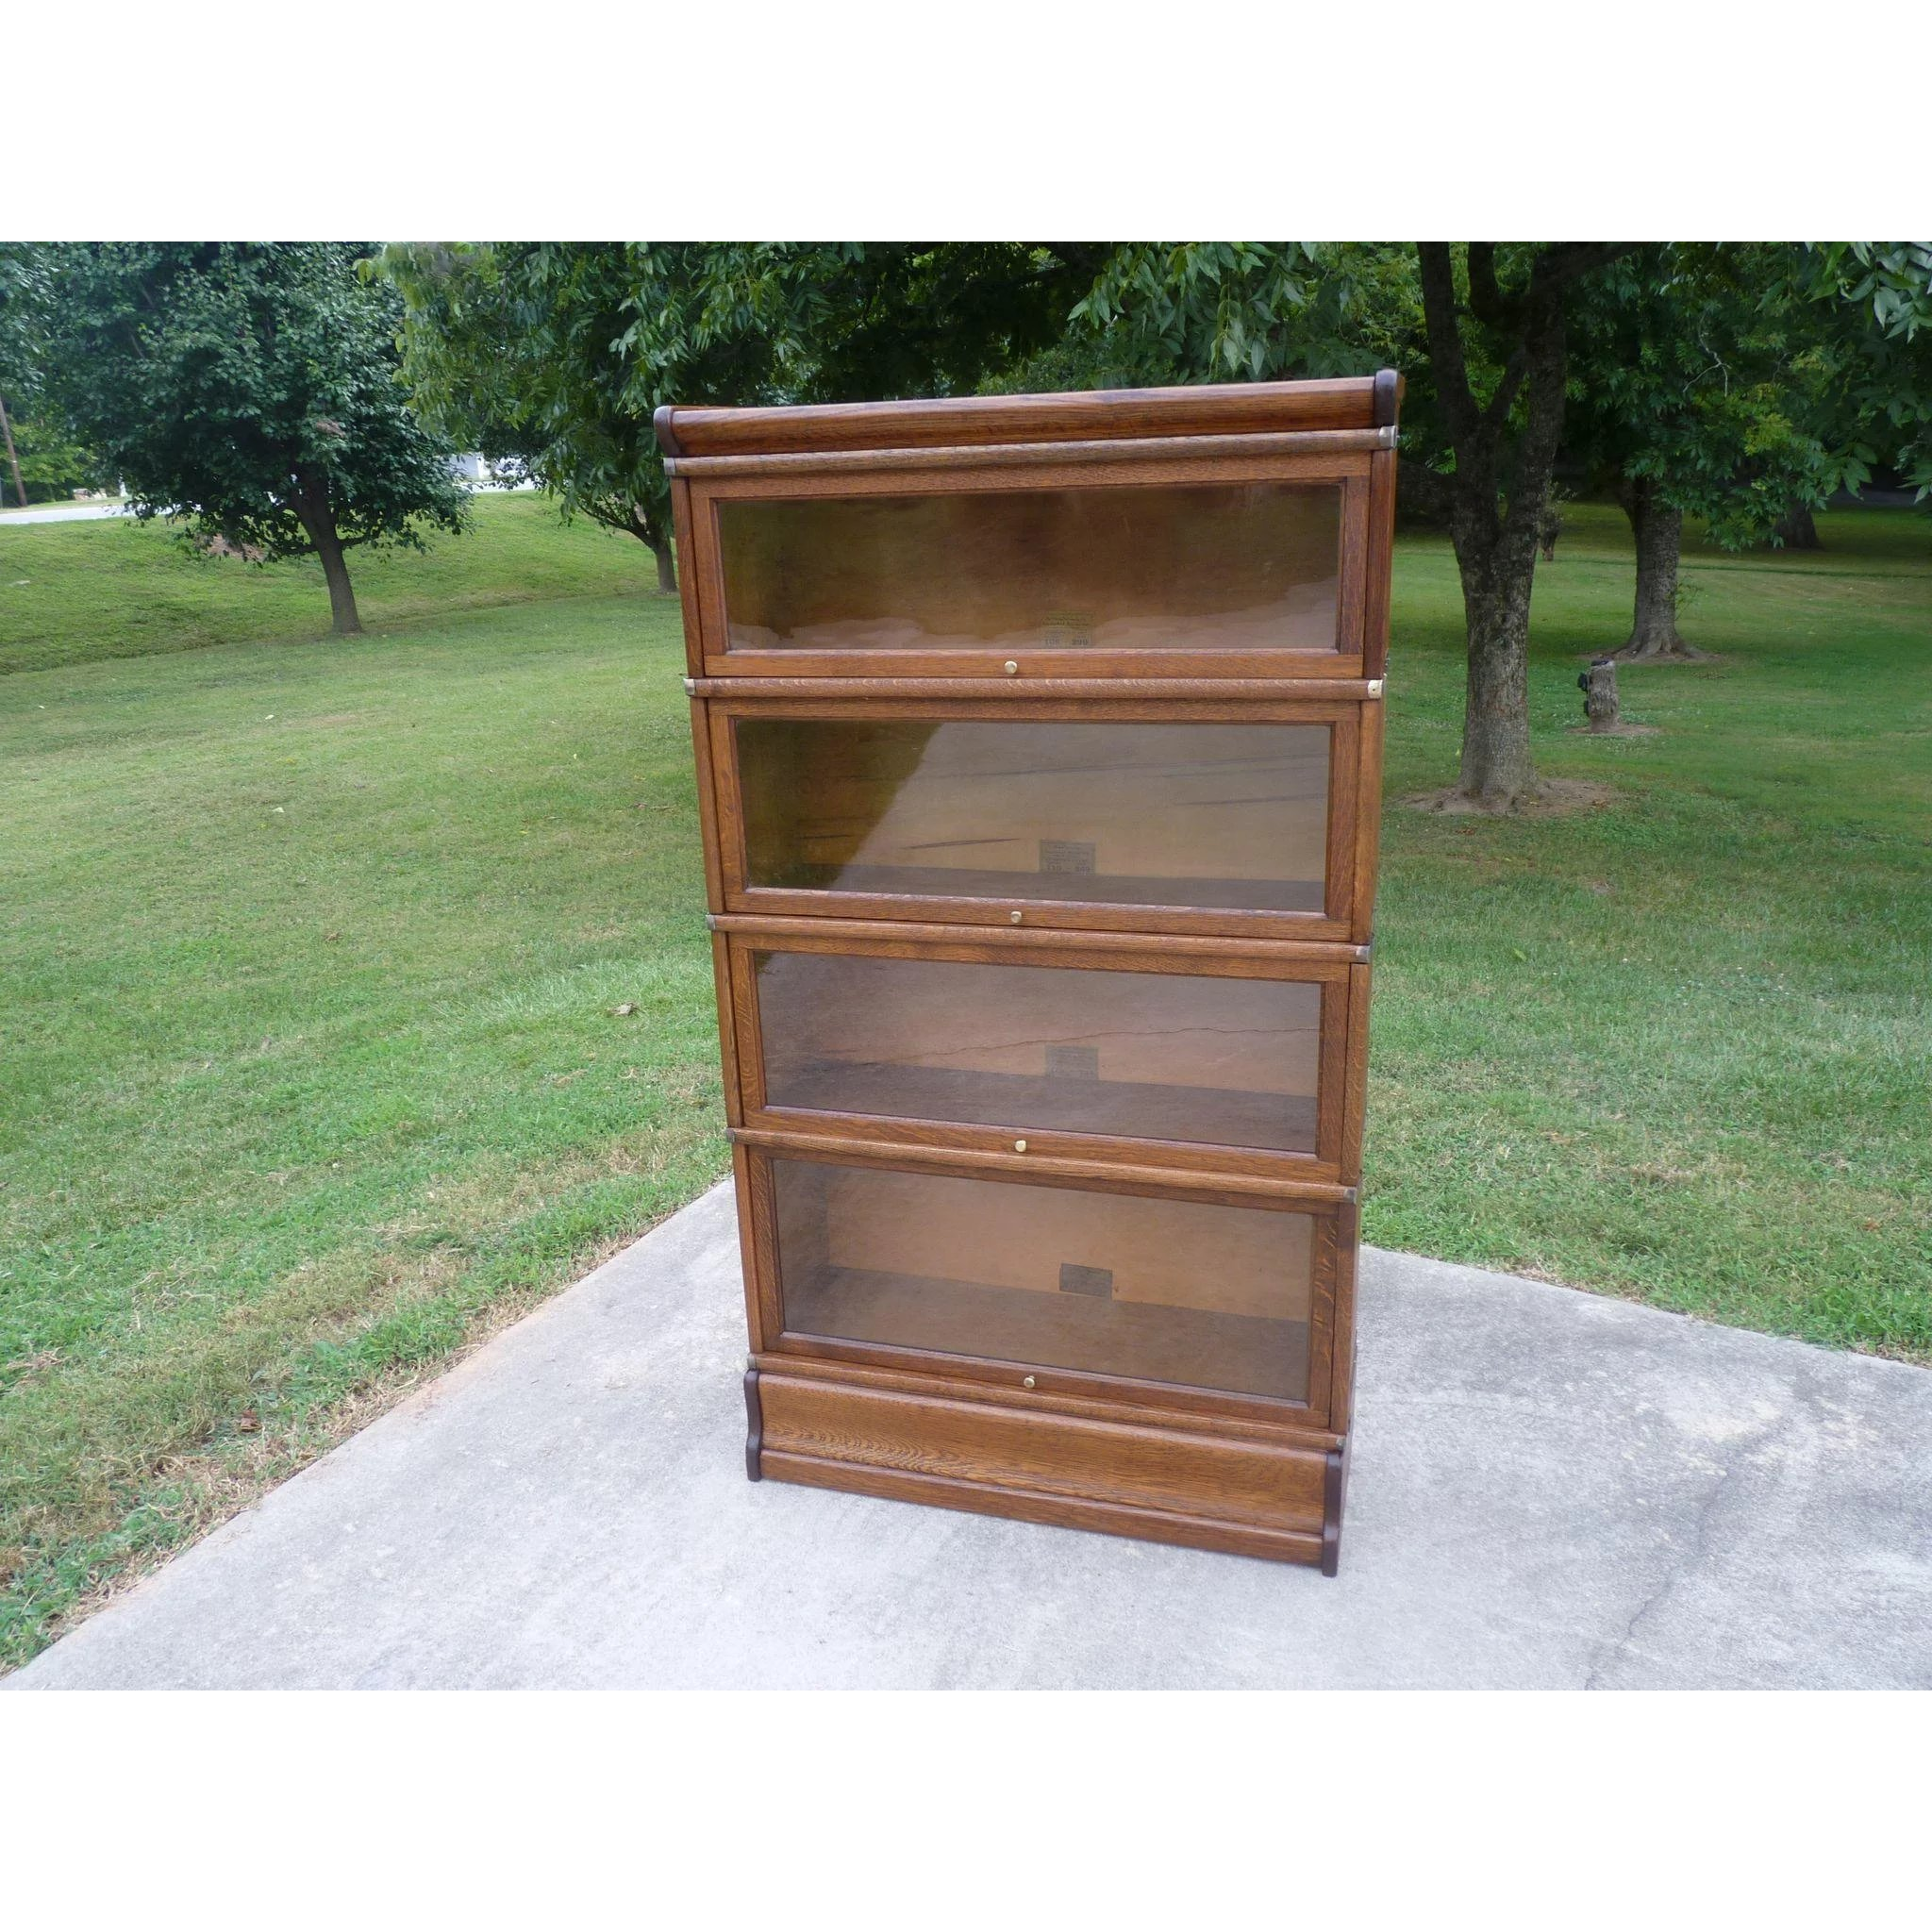 pieces poul id org danish storage bookcases lane barrister modern case at bc hundevad z f teak furniture double bookcase